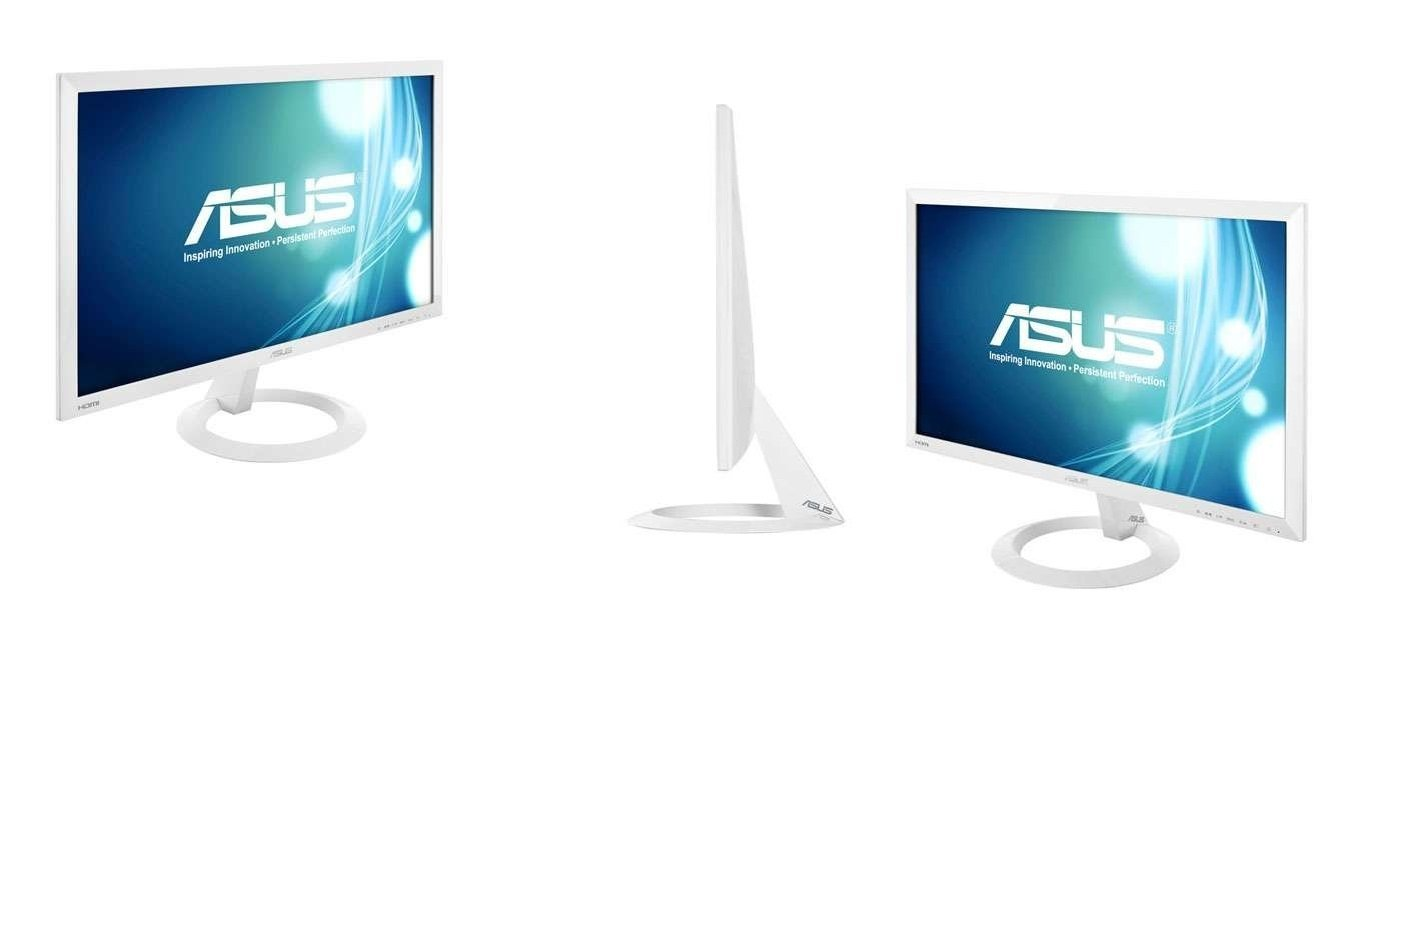 ASUS 23-inch Full HD Wide-Screen Gaming Monitor [VX238H] 1080p, 1ms Rapid Response Time, Dual HDMI, Built in Speakers, Low Blue Light, Fliker Free, ASUS EyeCare